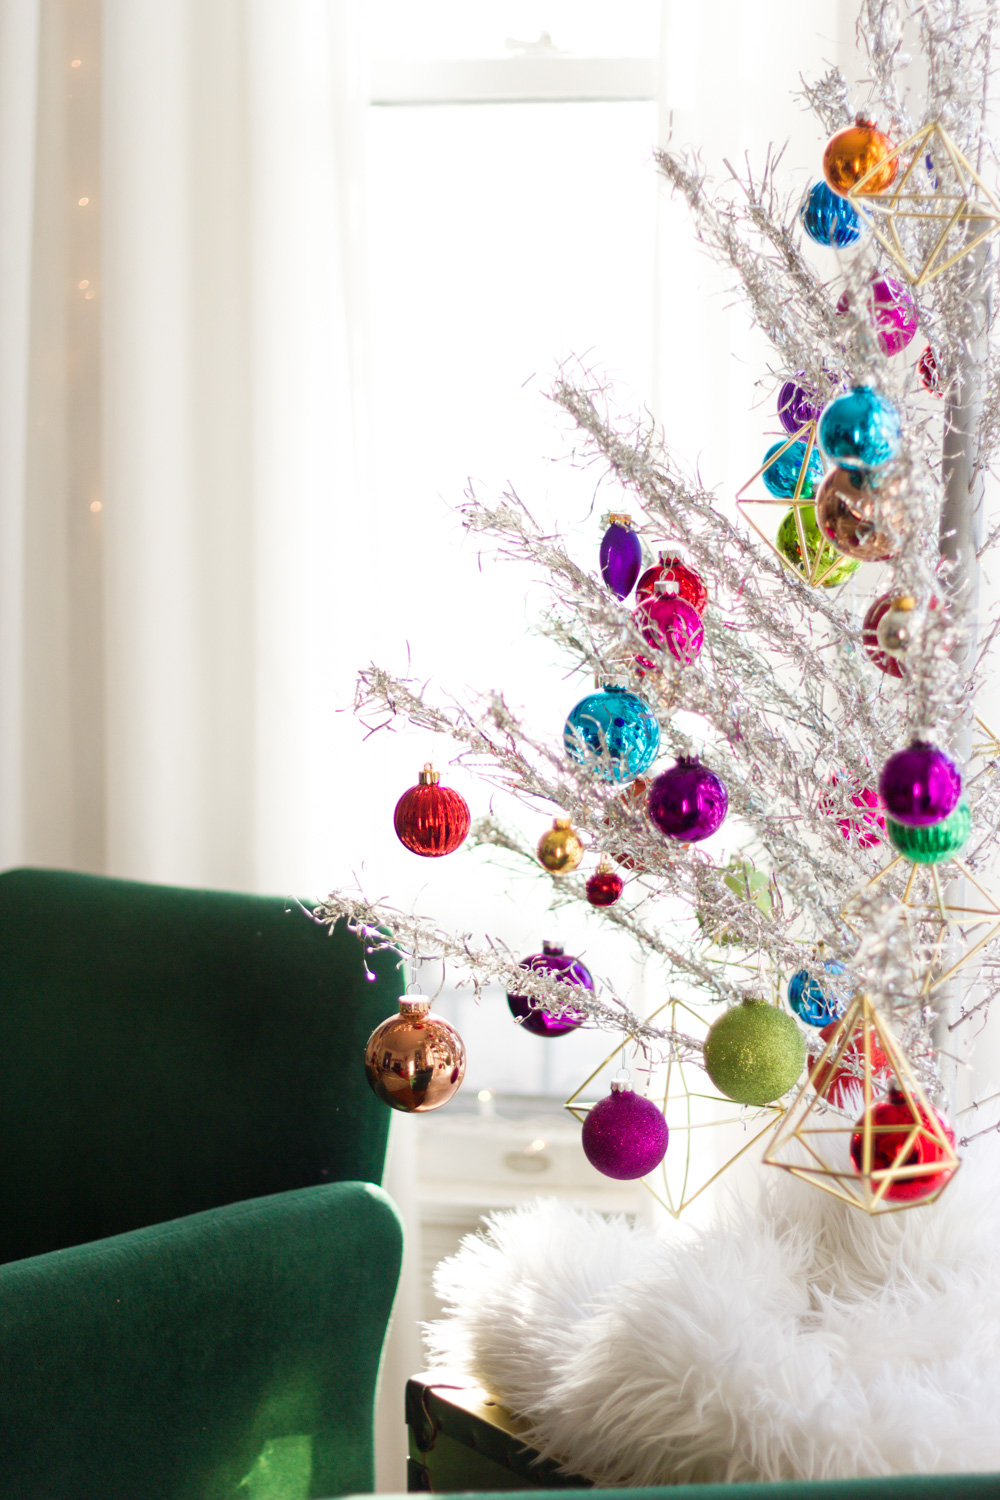 vintage silver aluminum Christmas tree with colorful ornaments, green velvet chair